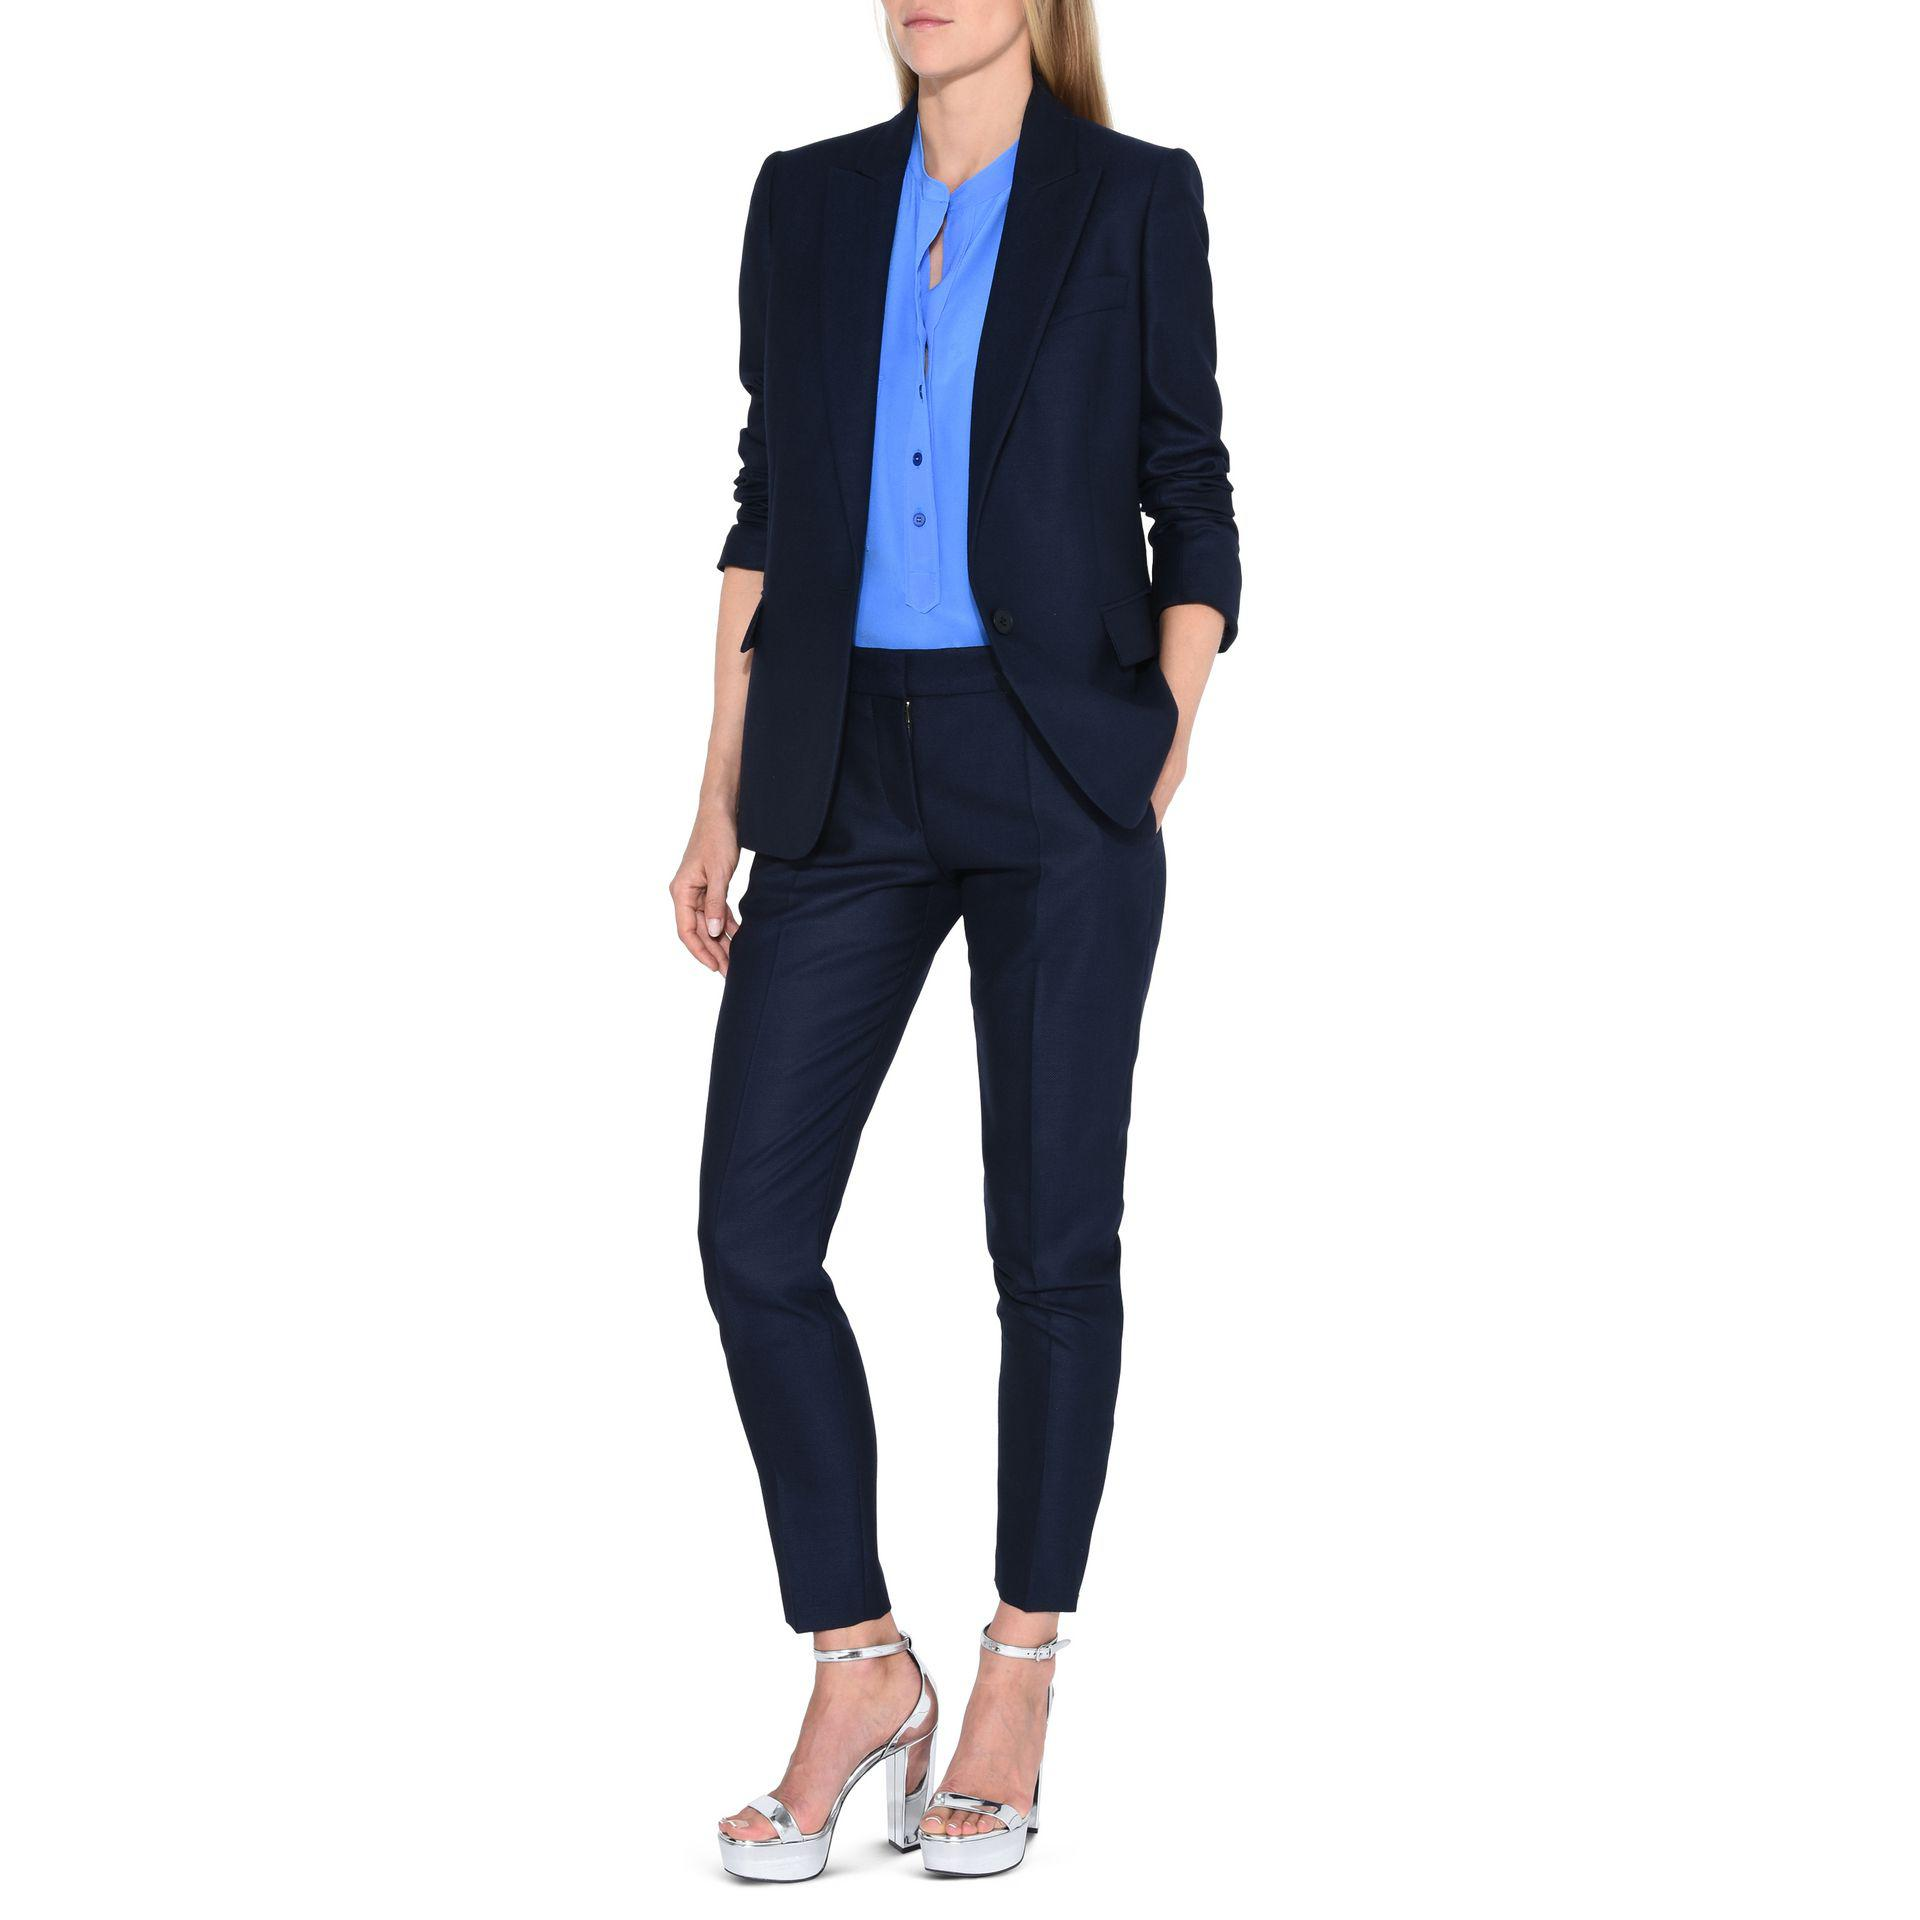 d21d5cc7450 Lyst - Stella Mccartney Ink Iris Jacket in Blue